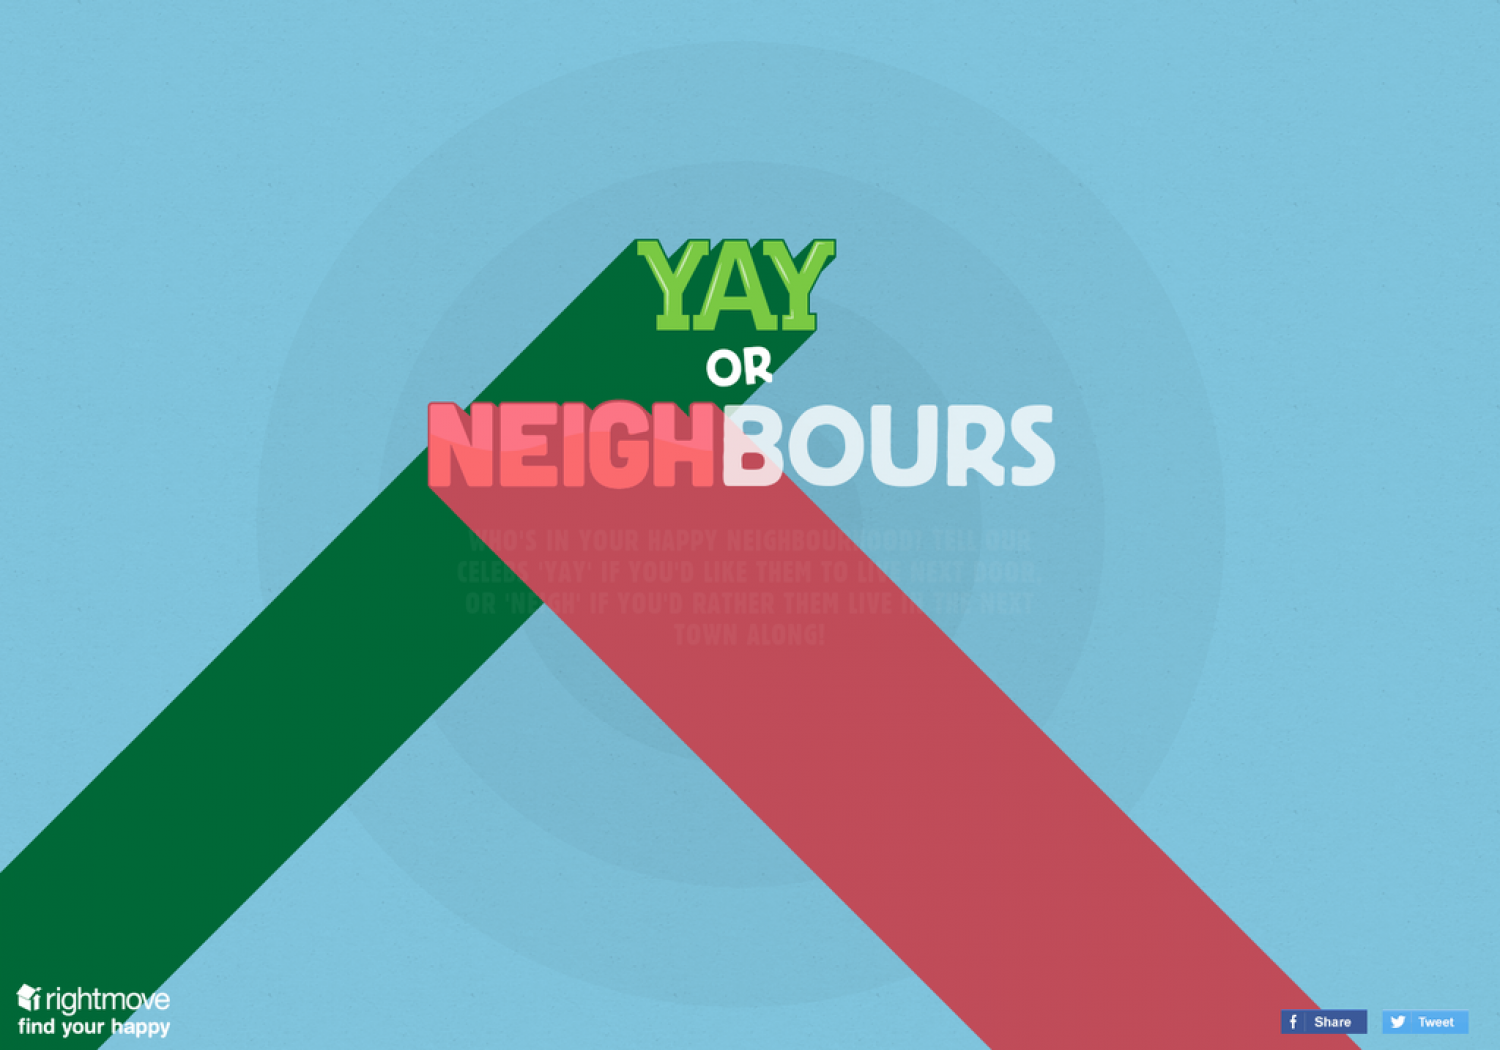 Yay or Neighbours Infographic